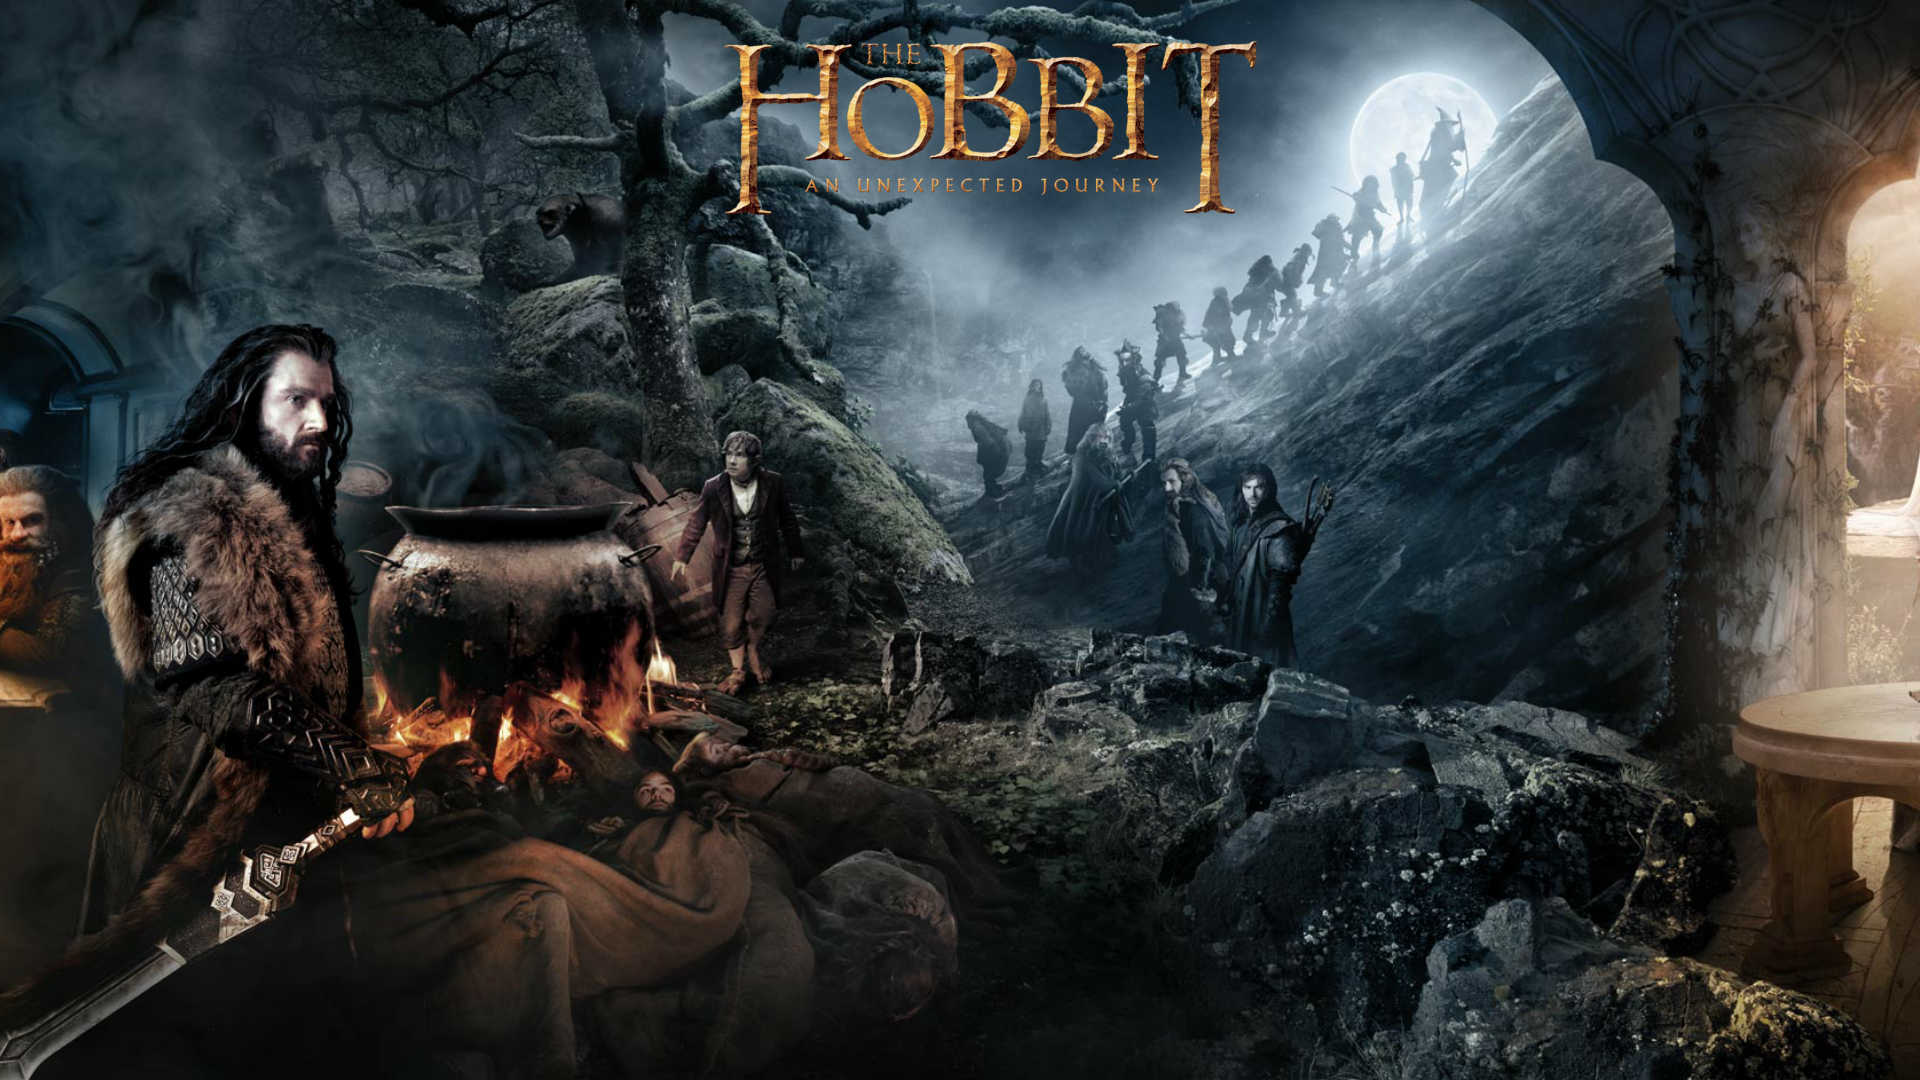 The Hobbit Wallpapers HD Wallpapers 1920x1080